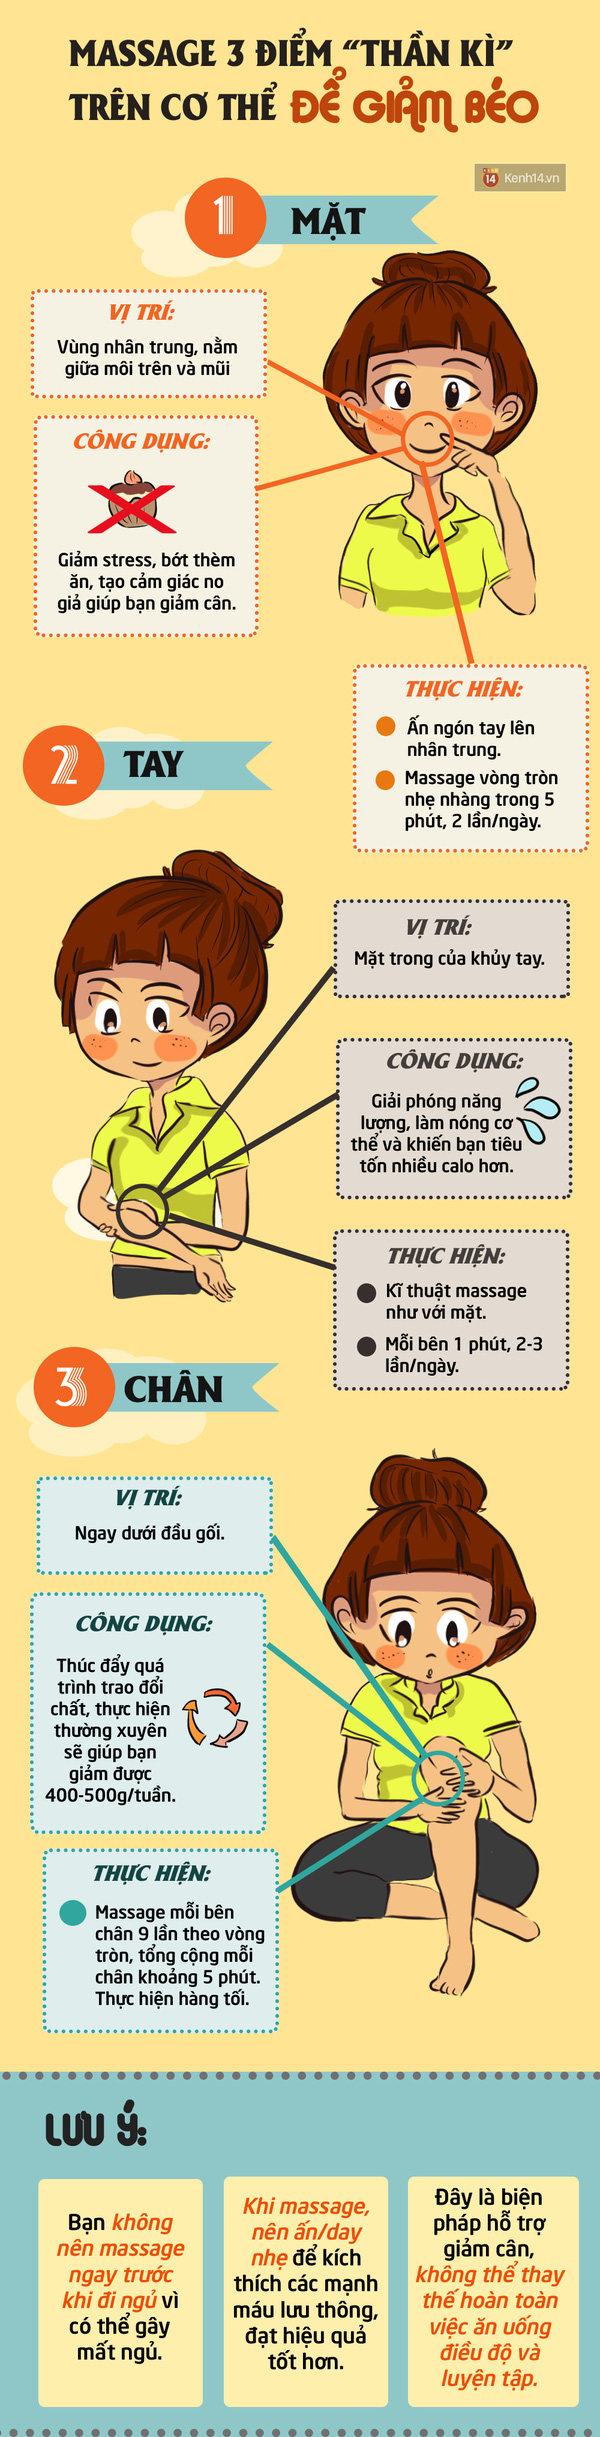 chi can massage nhung diem nay ban cung co the giam beo 1